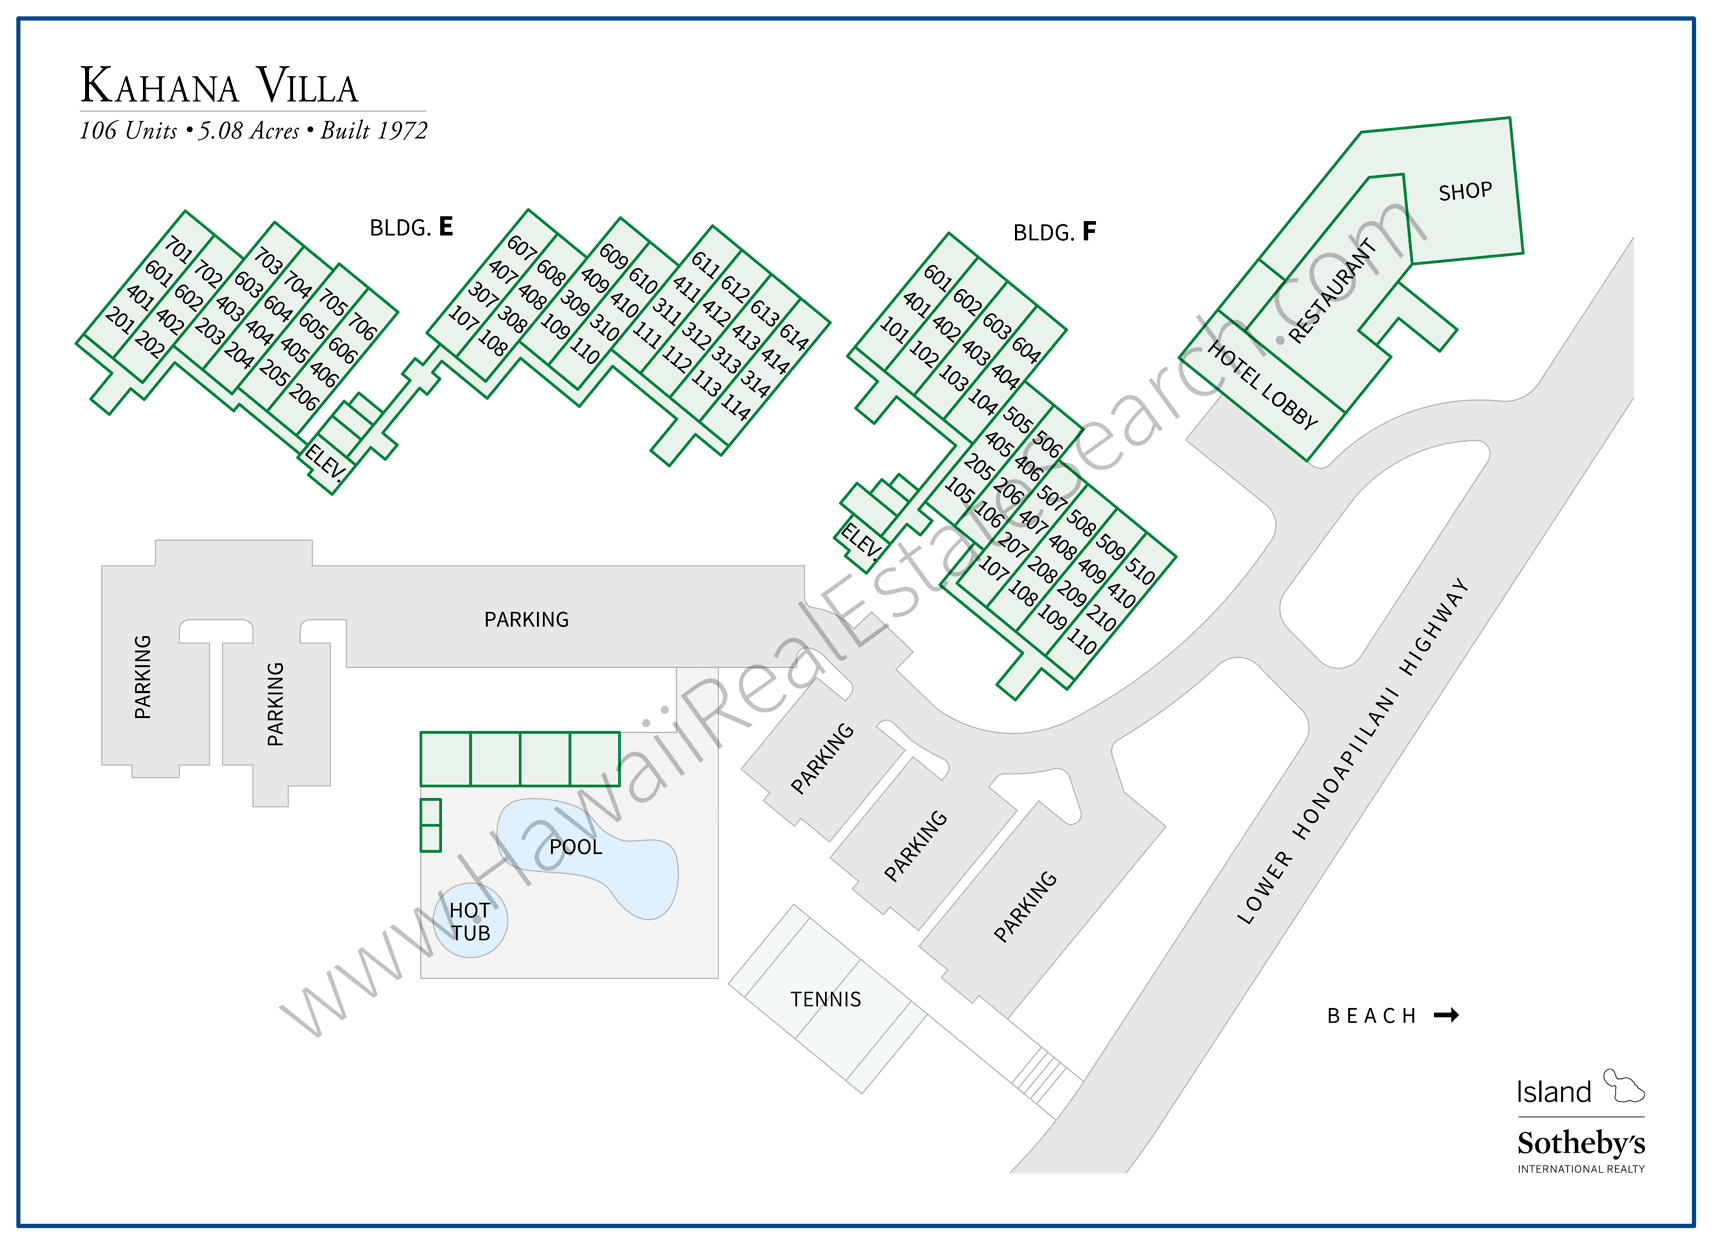 Kahana Villa Map Updated